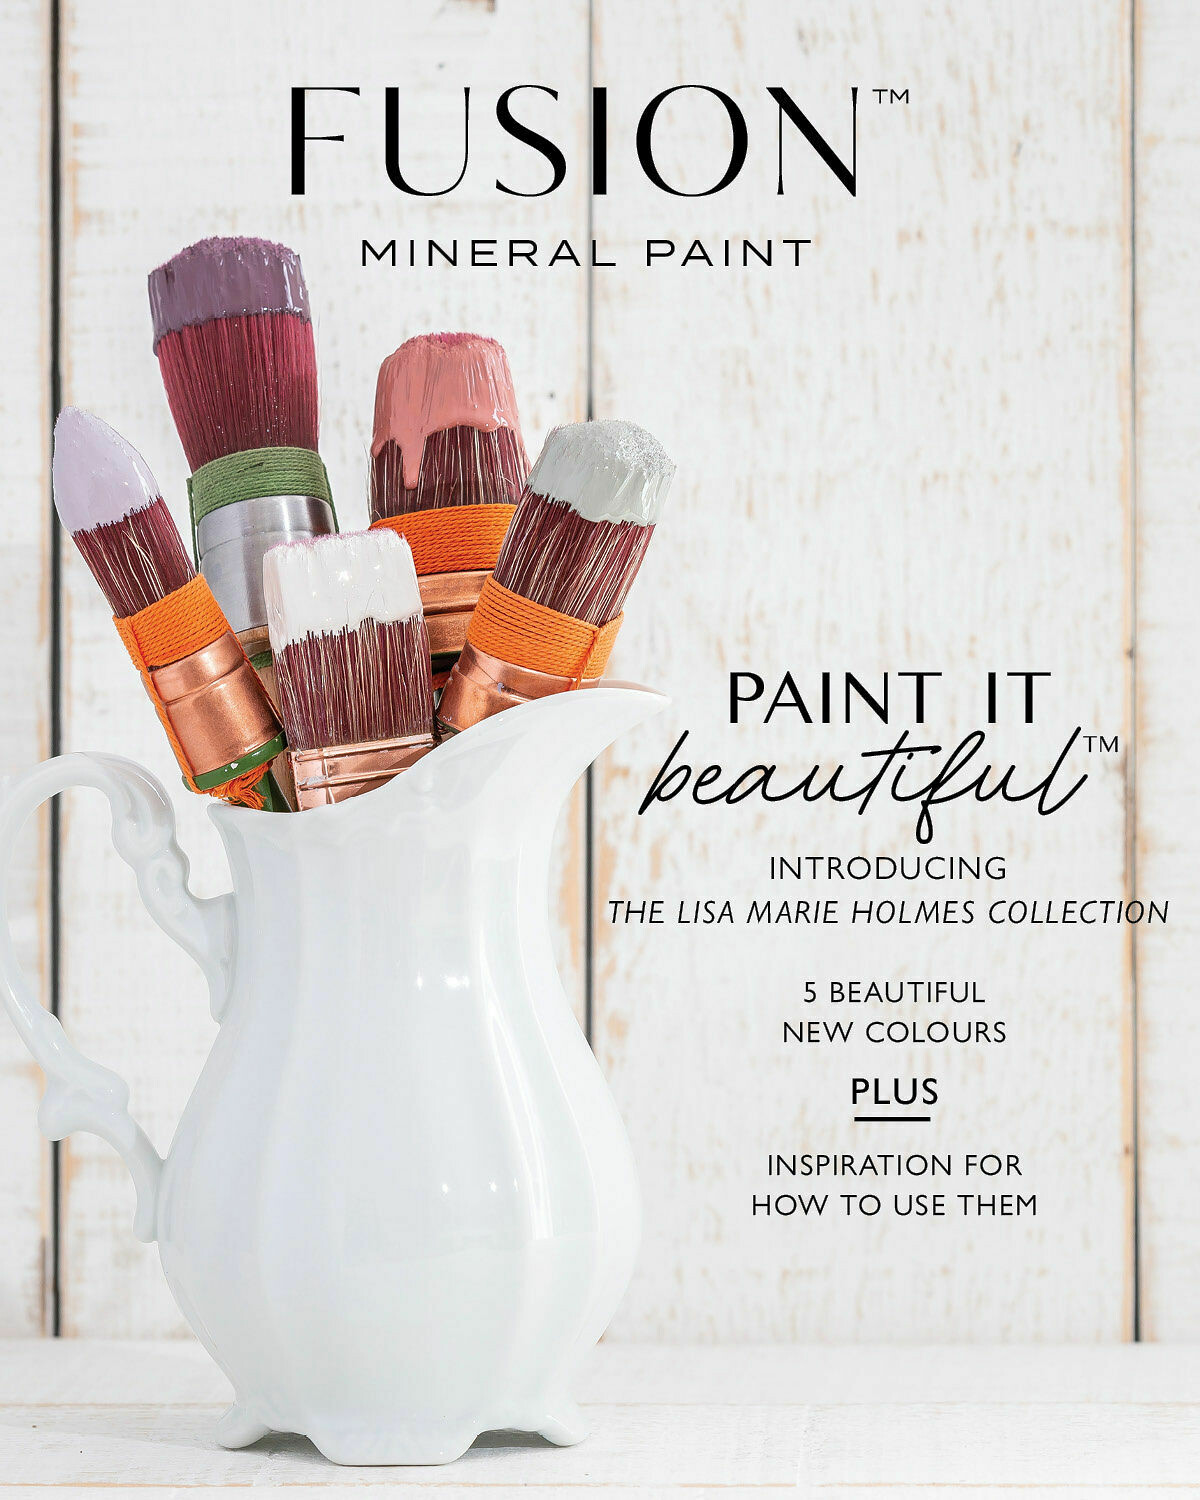 Fusion Mineral Paint Magazine - The Lisa Marie Holmes Collection